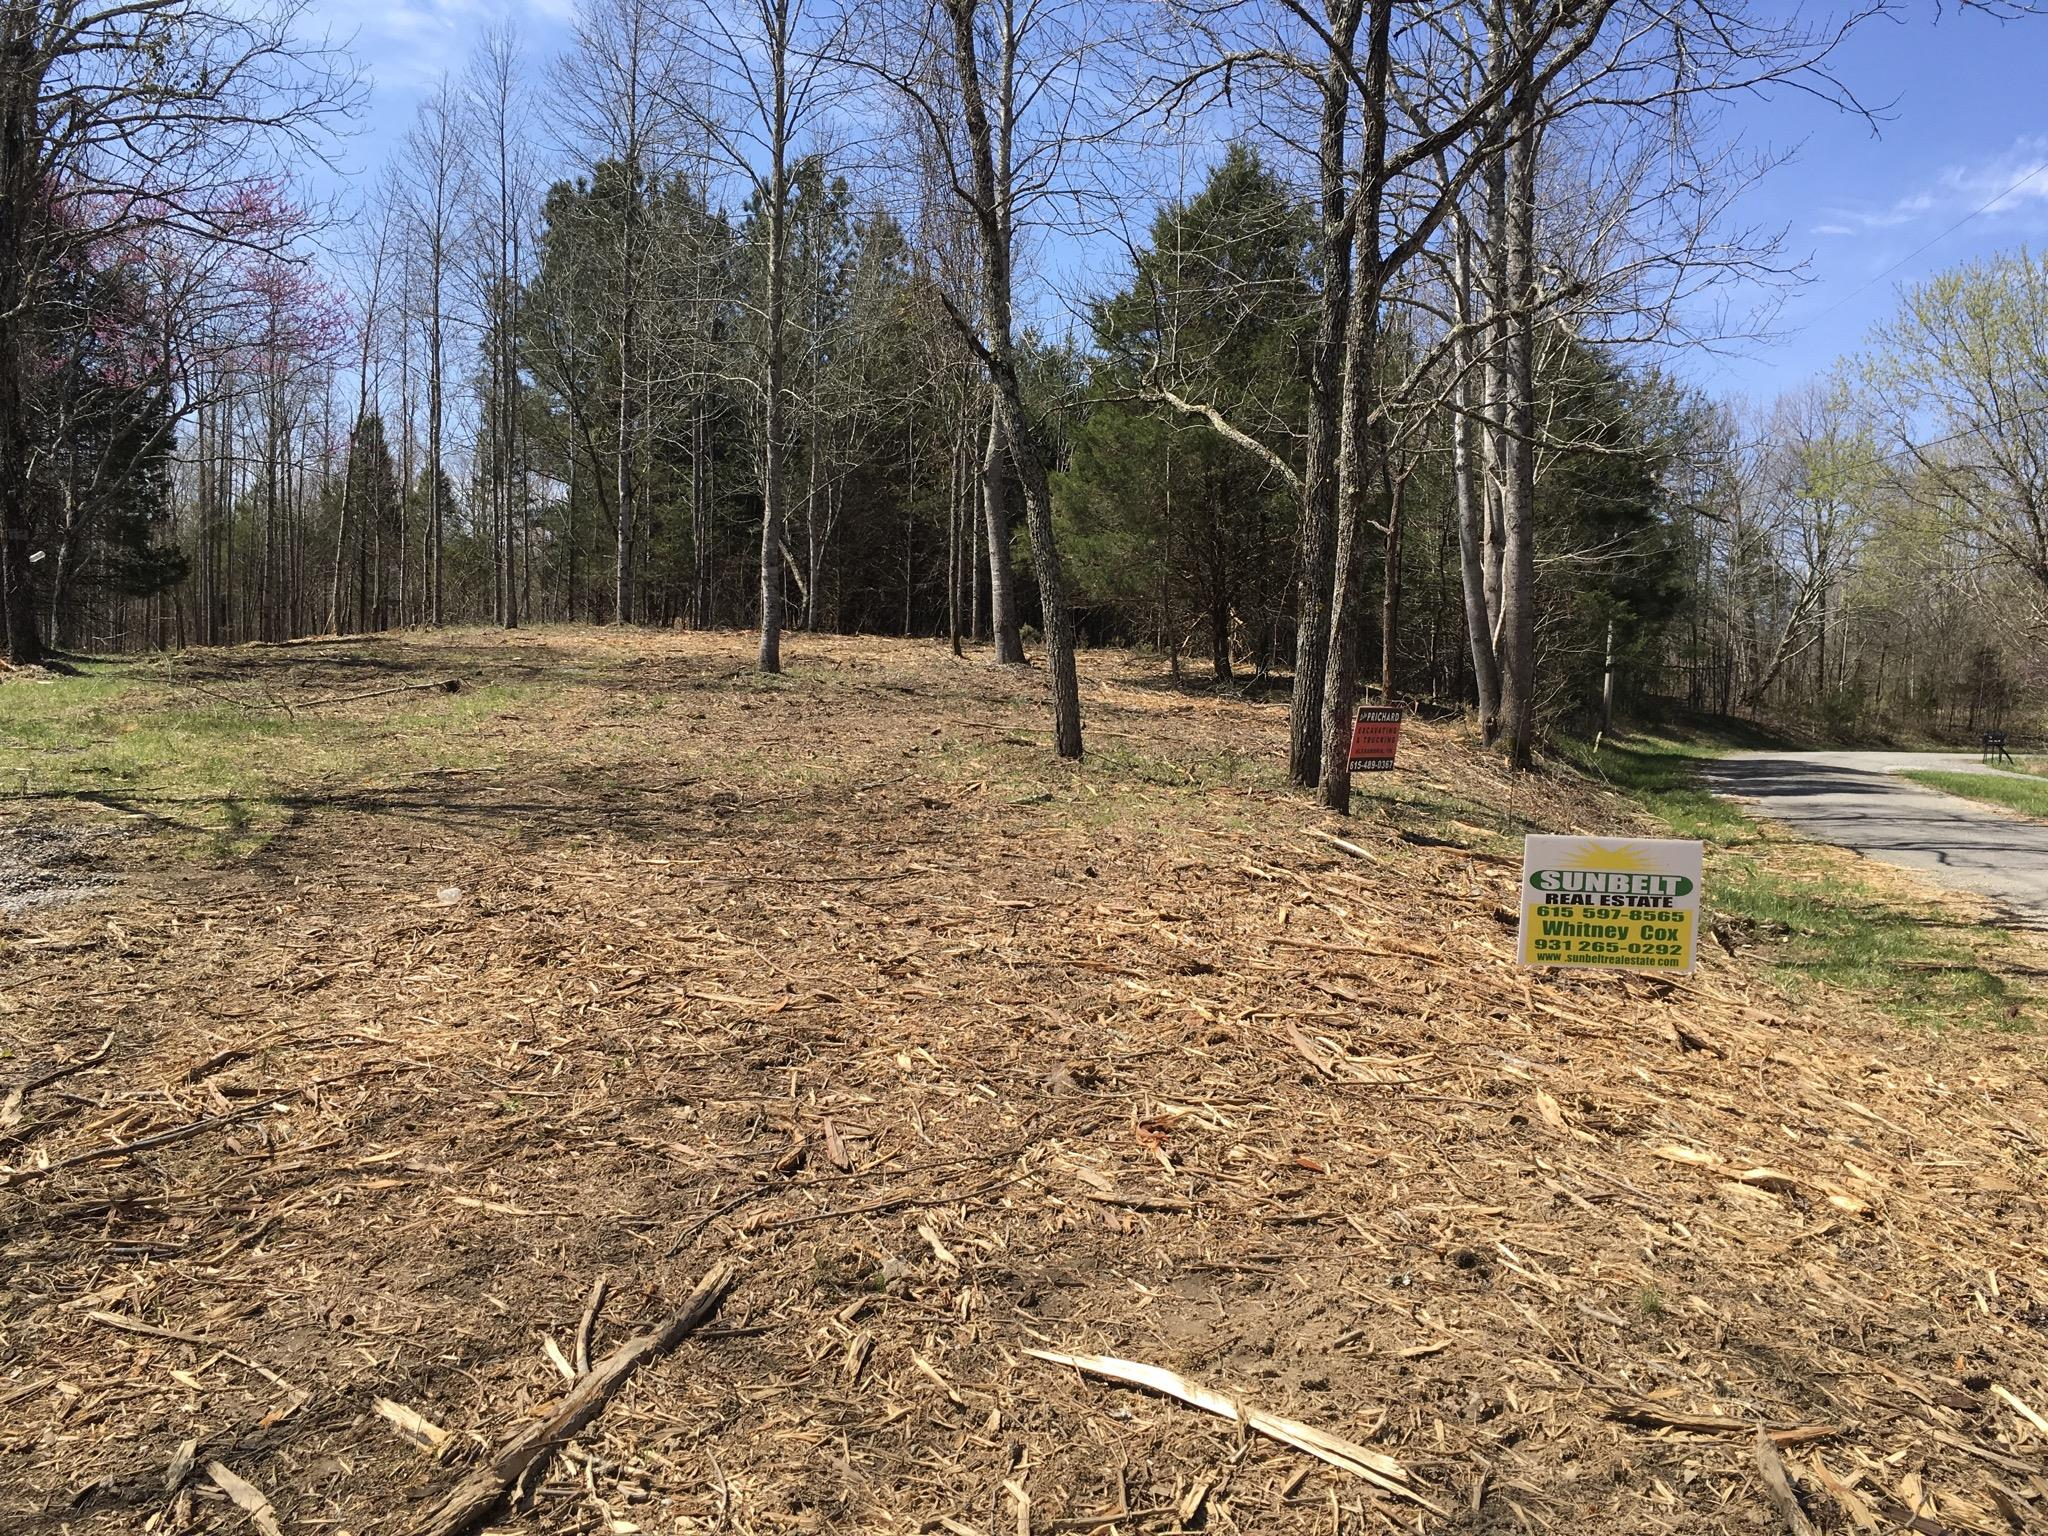 76 Stacey Rd, Smithville, TN 37166 - Smithville, TN real estate listing